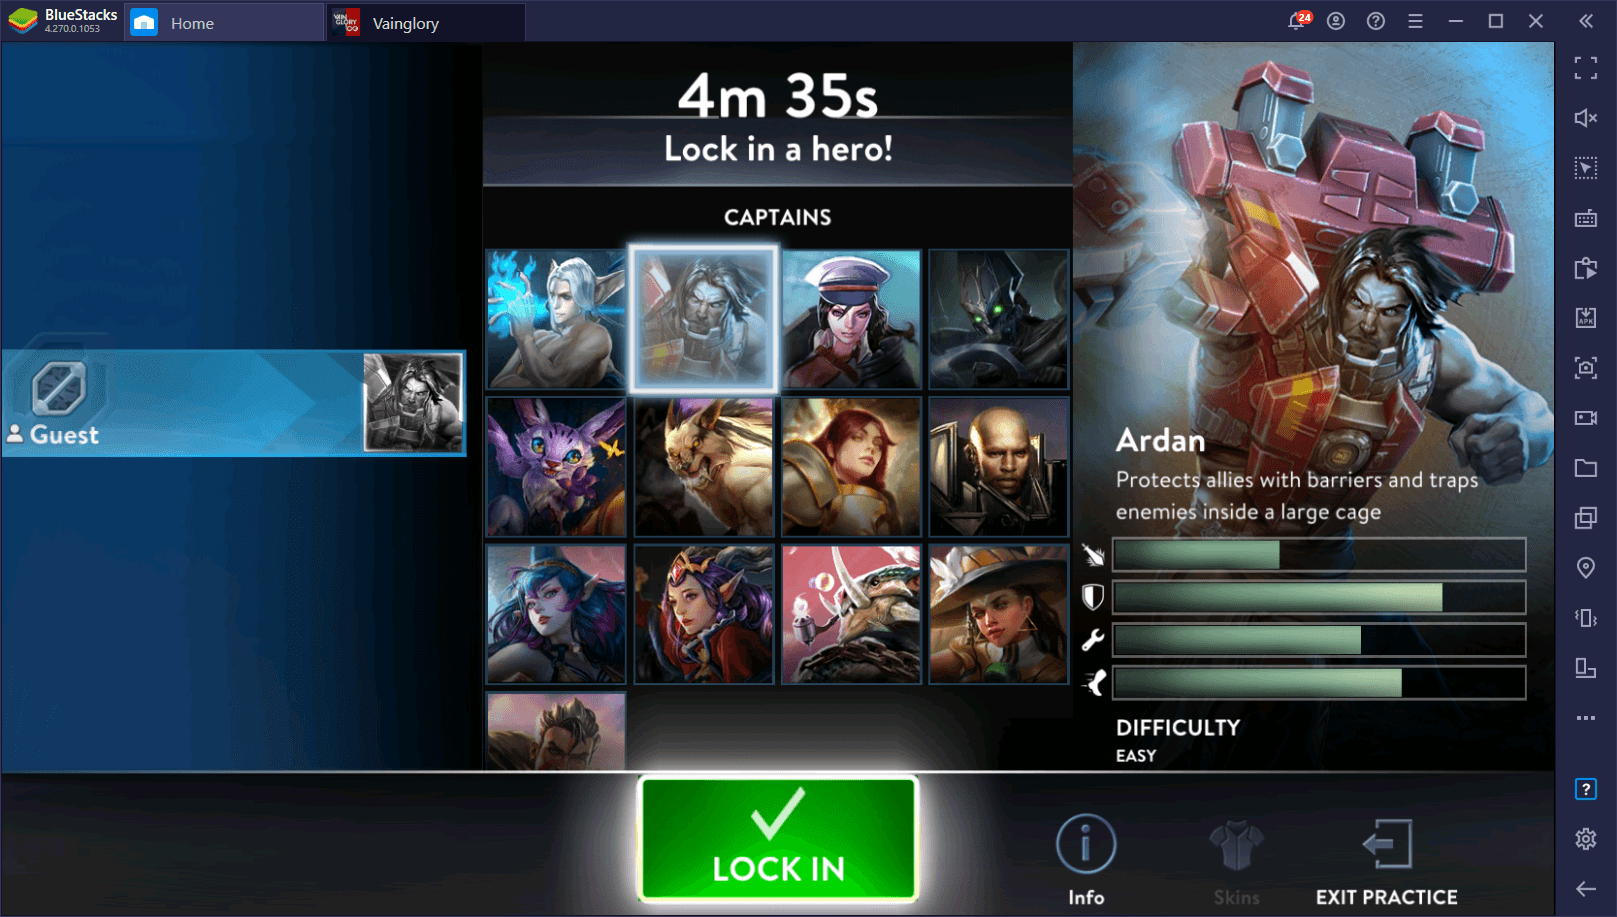 Vainglory – How to Use BlueStacks Features to Outplay Your Opponents